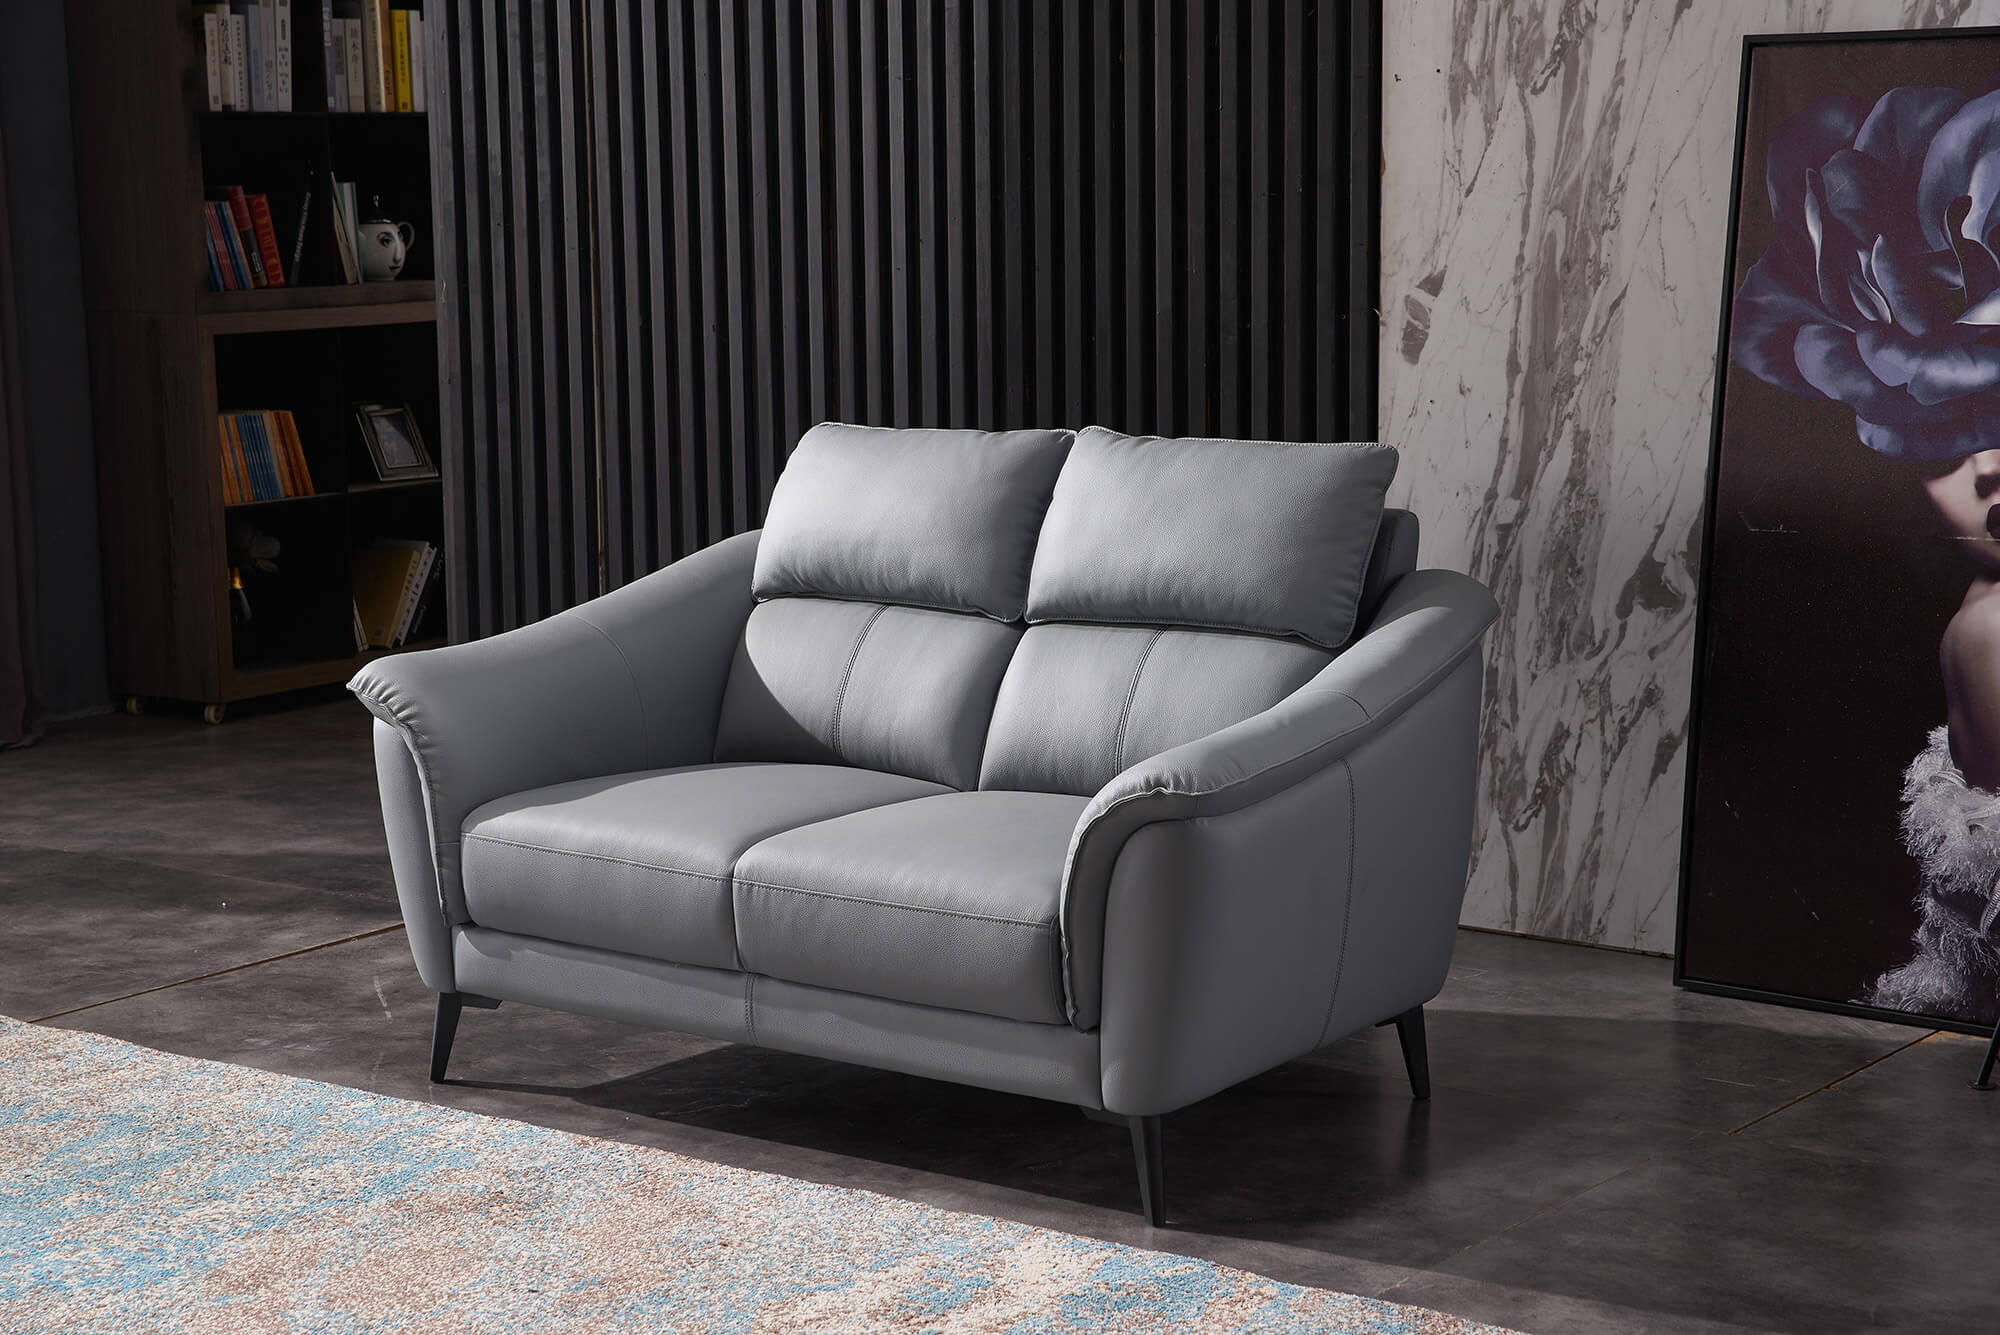 steel grey leather 2 seater sofa